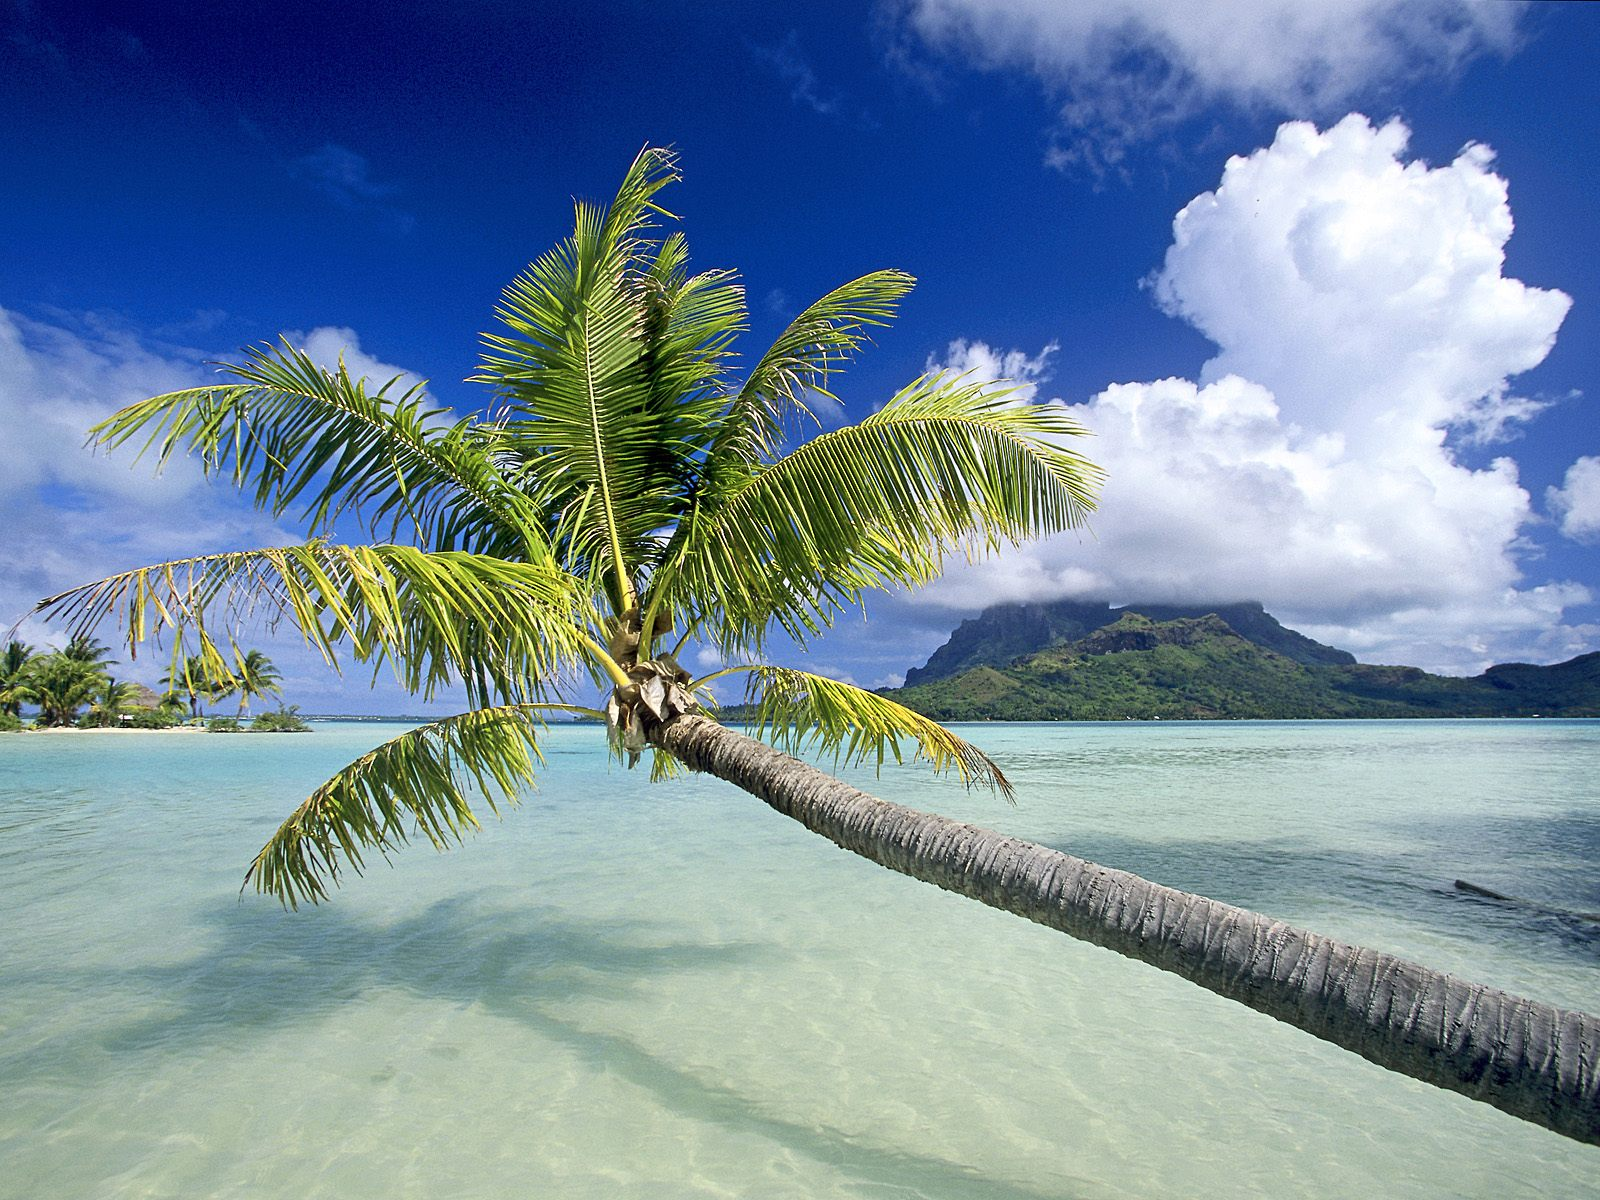 tropical resorts wallpaper background - photo #35